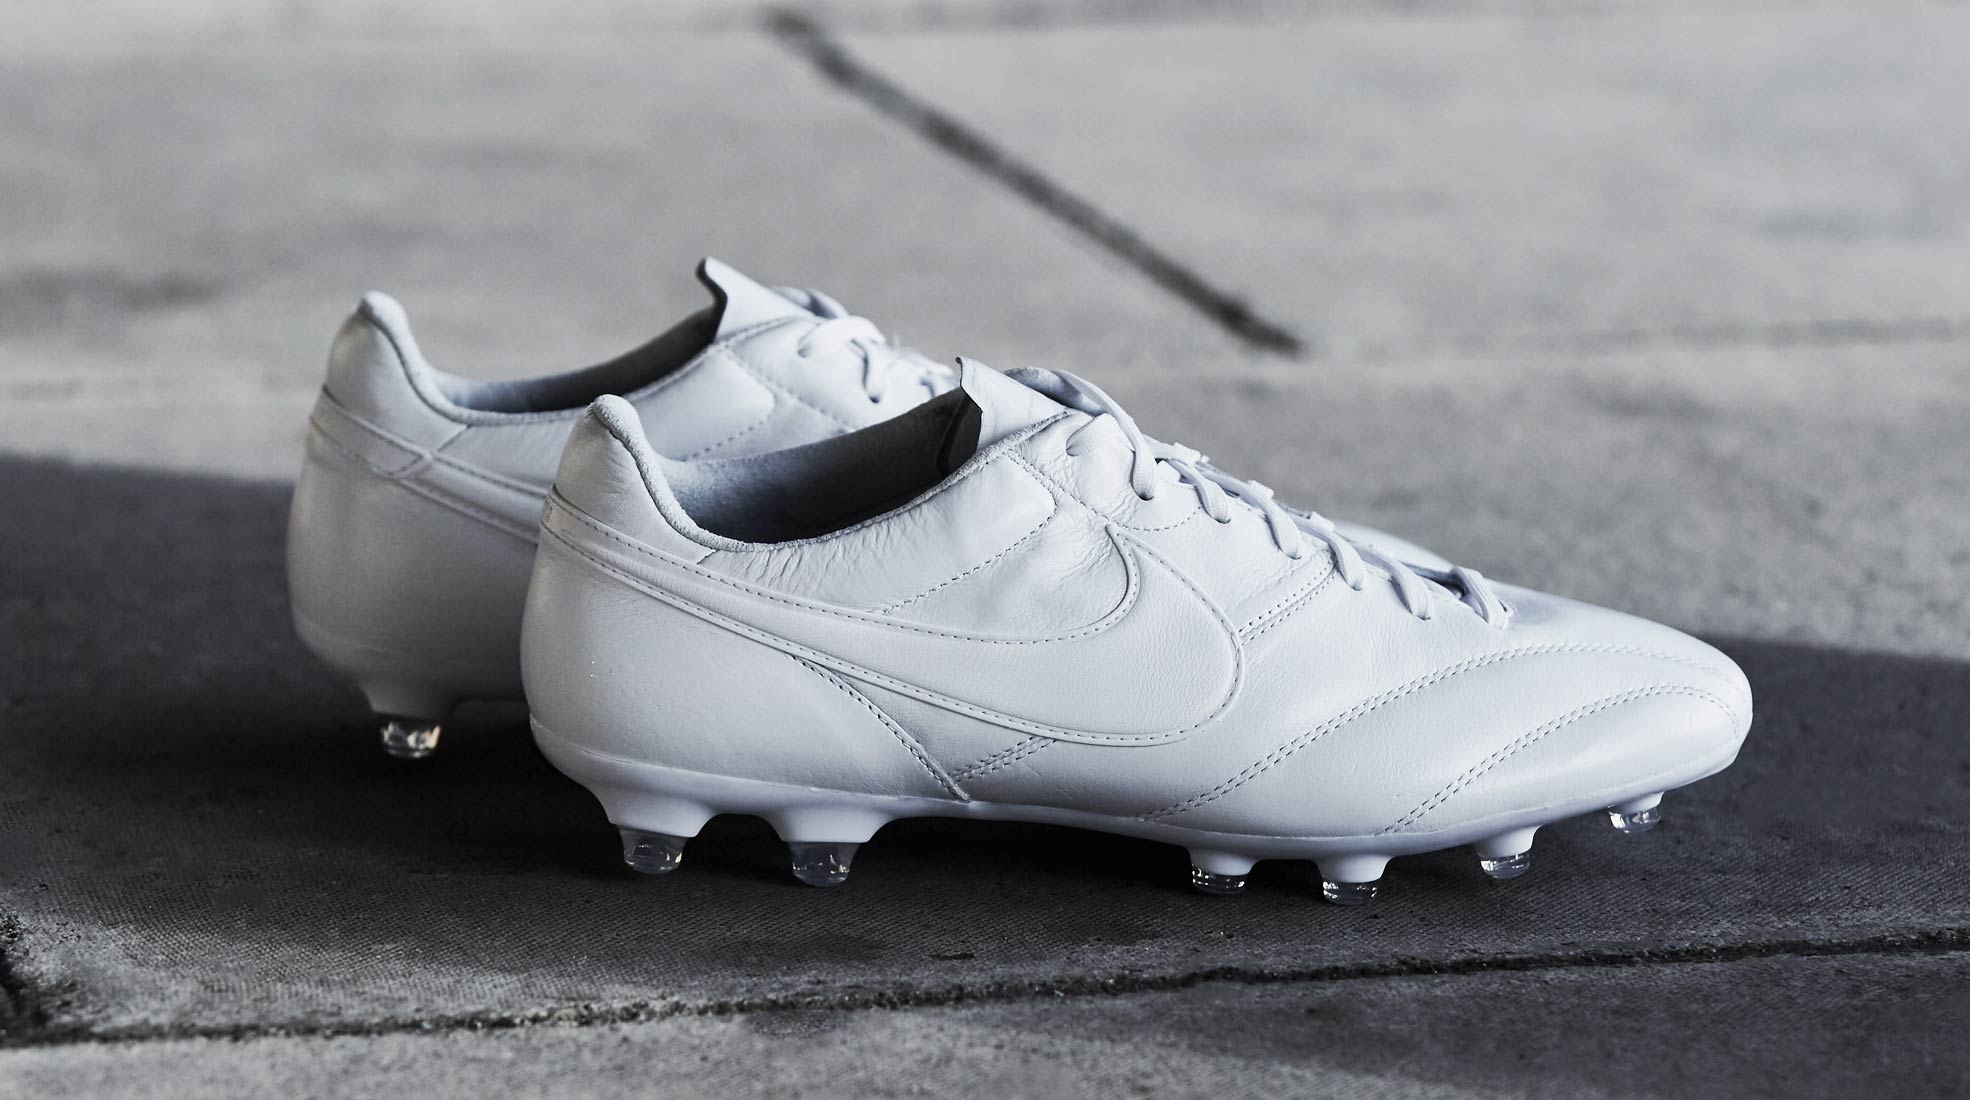 063f28891cf Nike Tiempo Premier Triple White Football Boots - SoccerBible